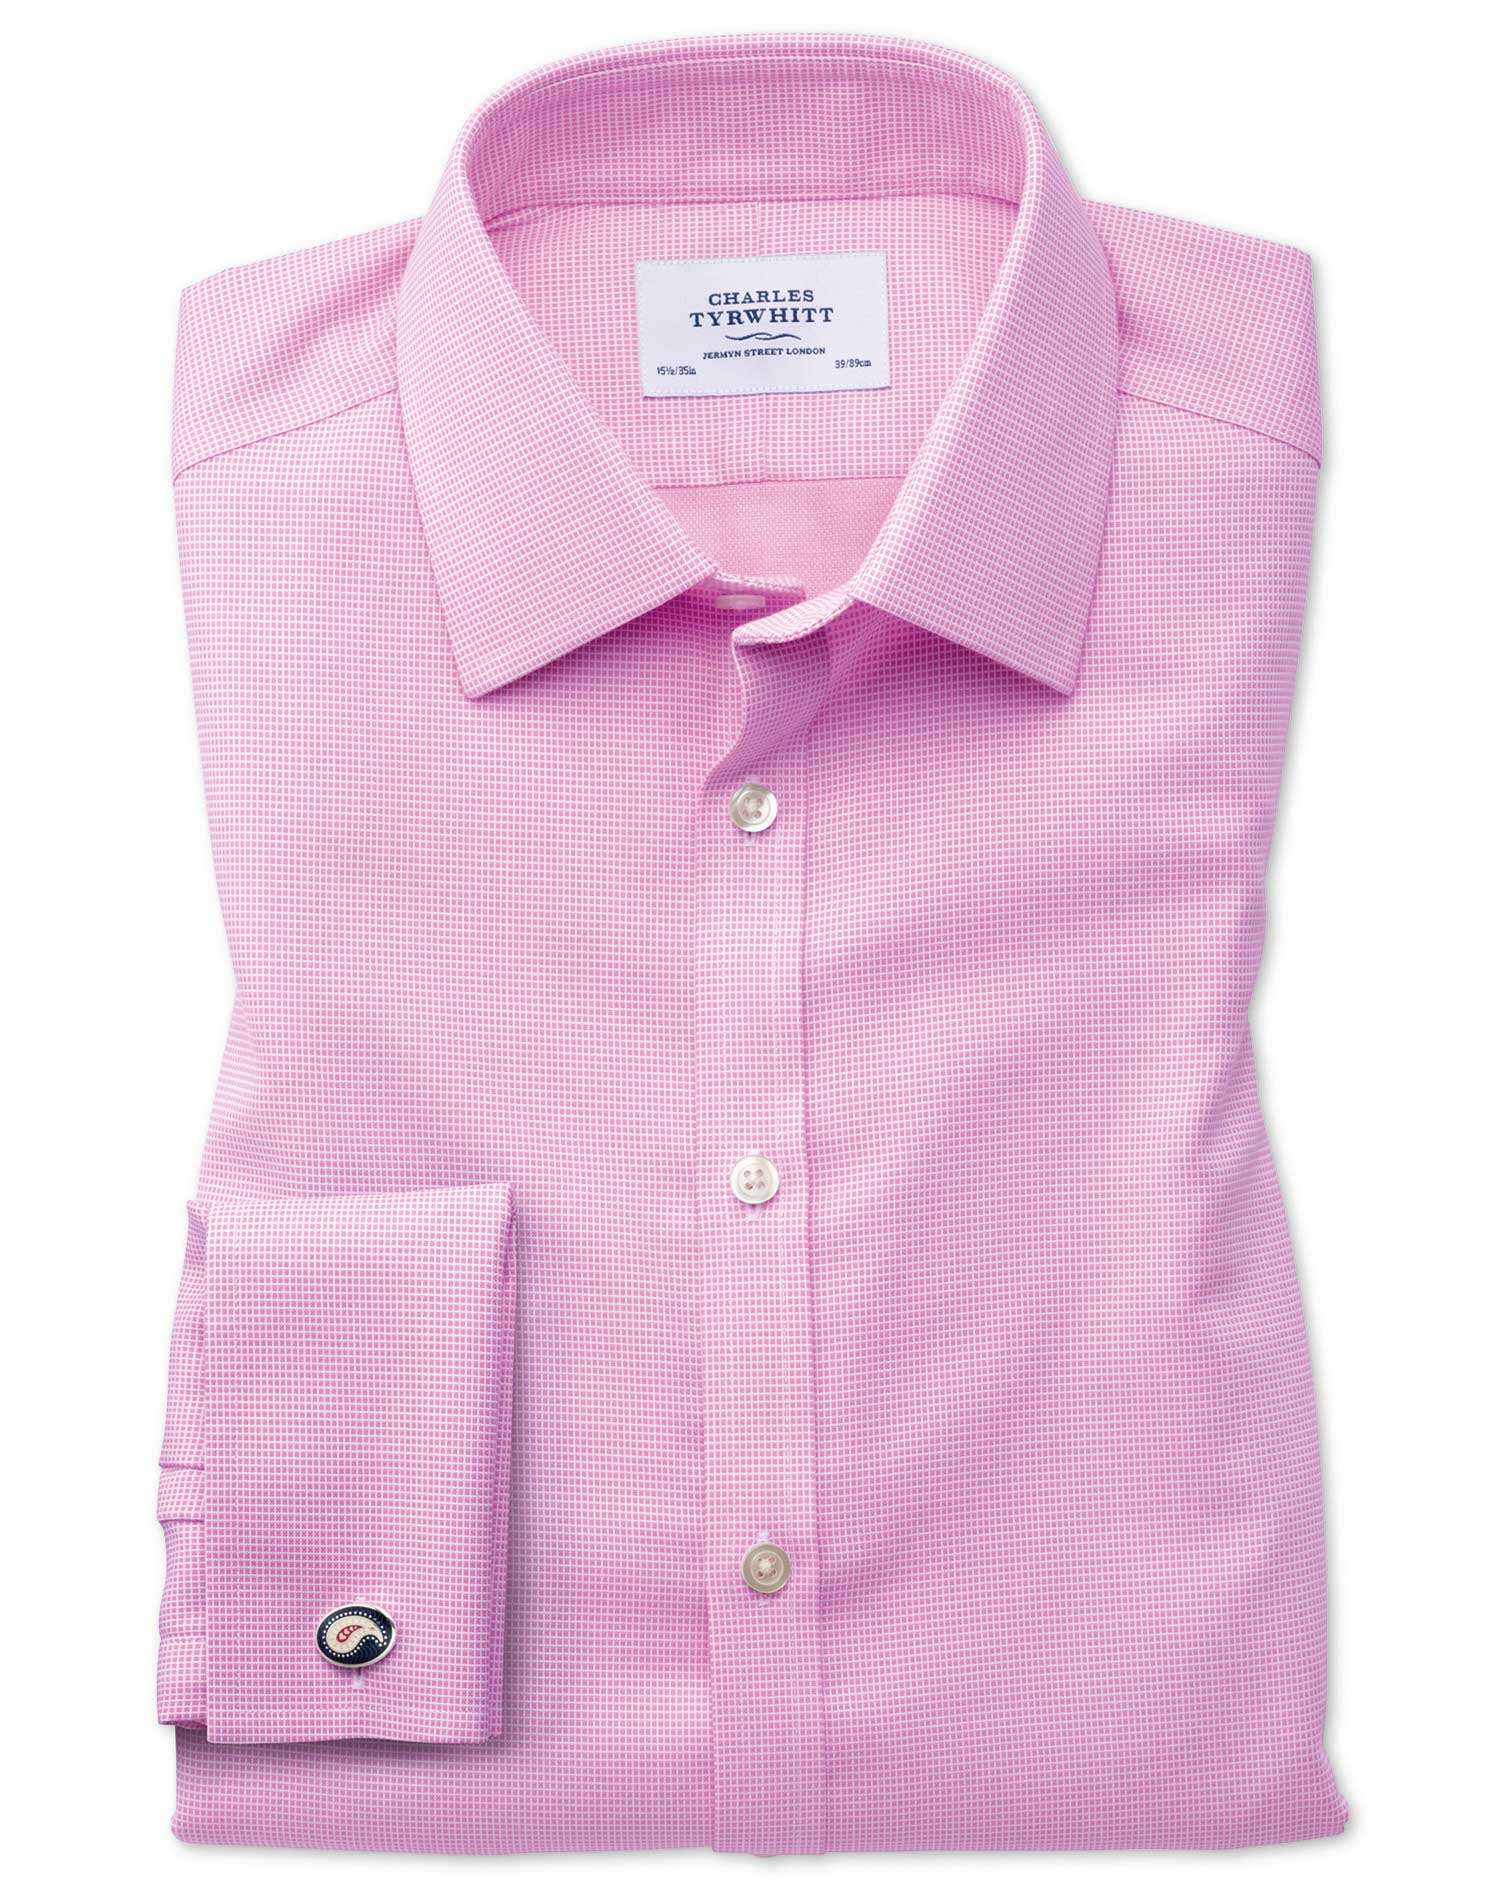 Extra Slim Fit Non-Iron Square Weave Pink Cotton Formal Shirt Double Cuff Size 15/33 by Charles Tyrw